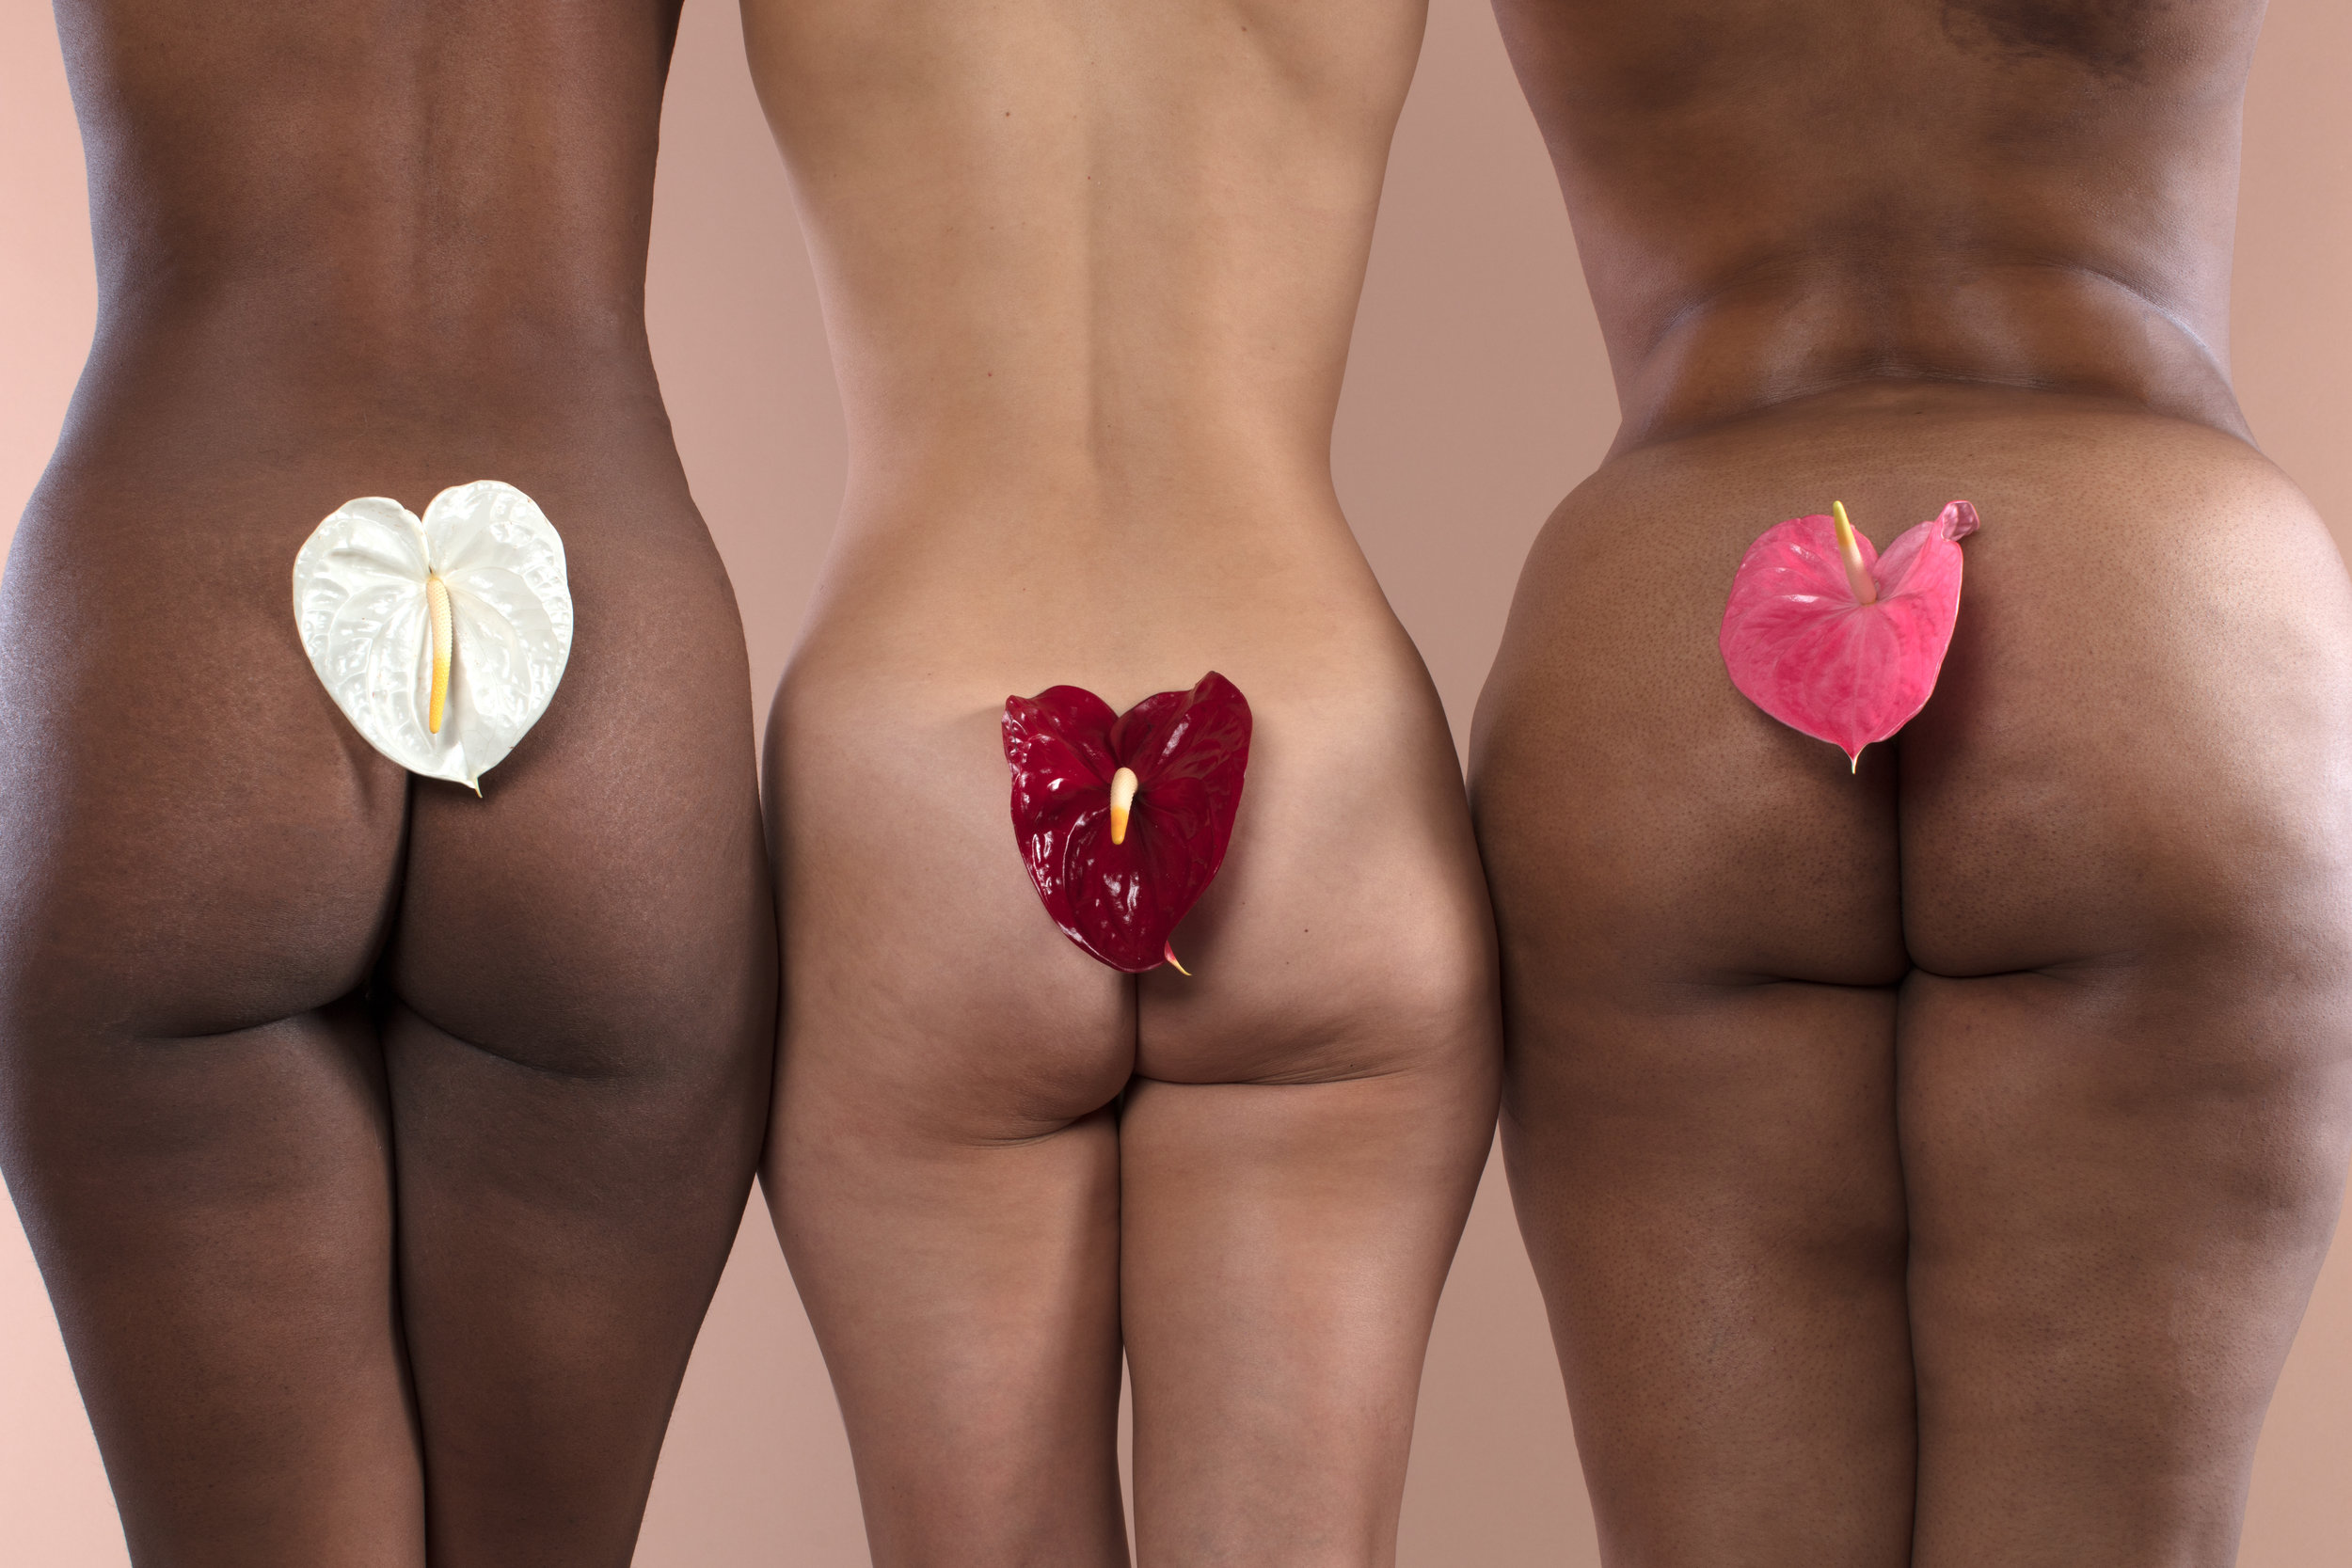 VdayBouquets_MoreButts_JessicaPettway_11.jpg